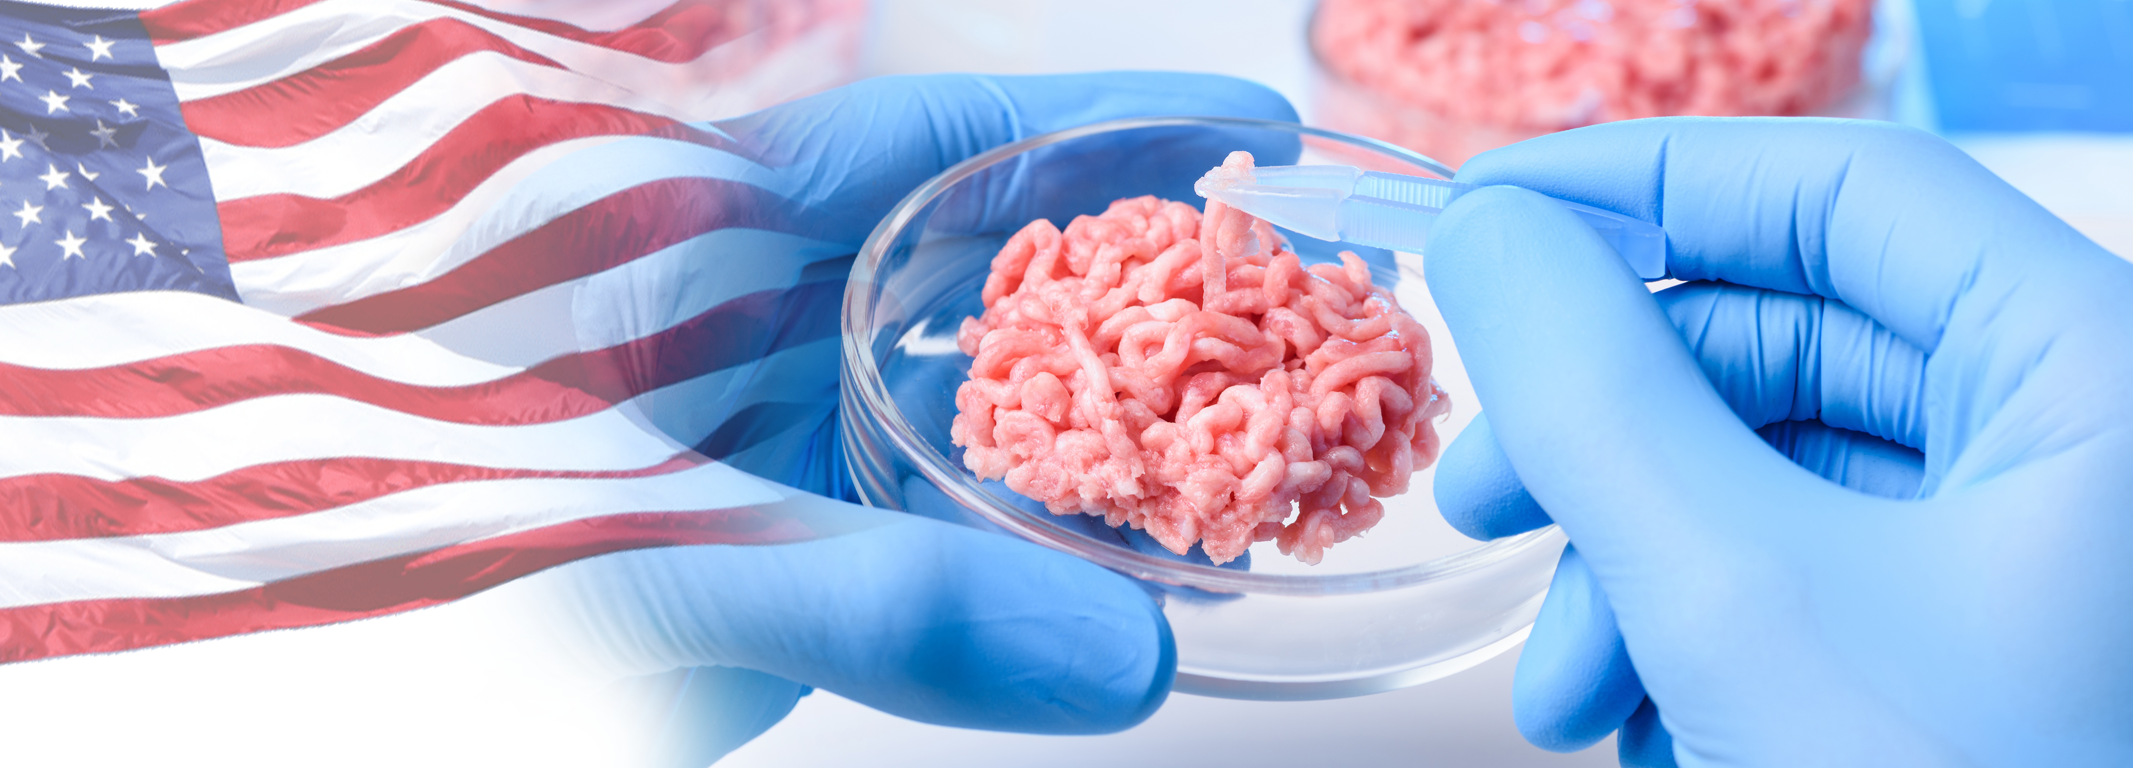 A meaty issue- is the U.S. prepared to place lab-grown meat on the market